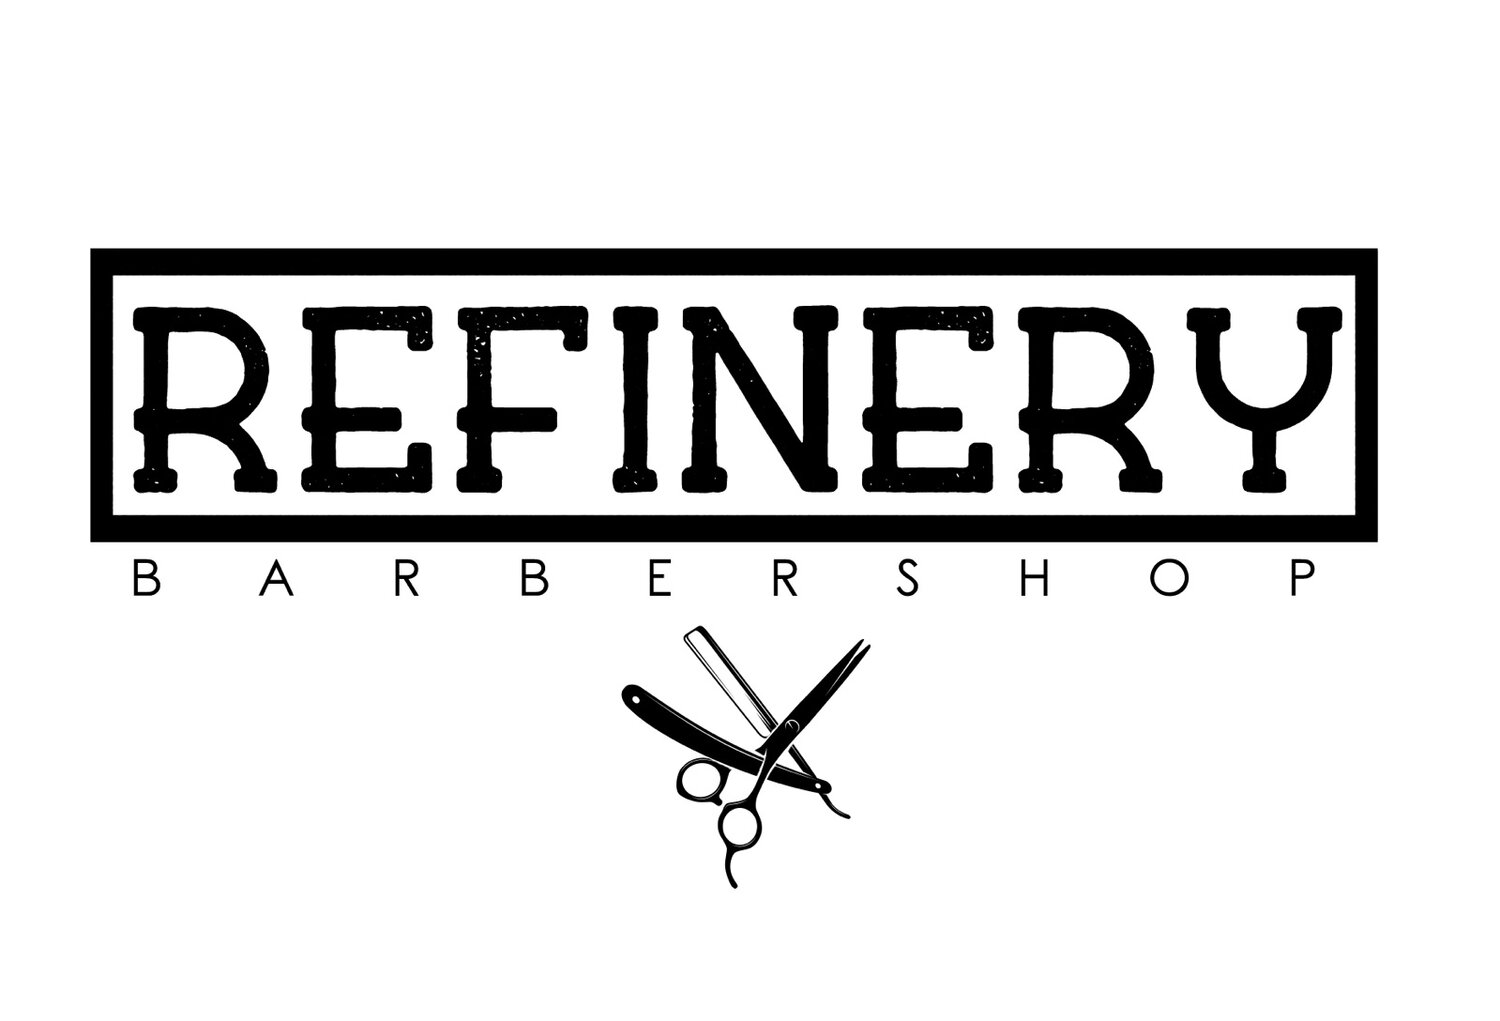 Refinery Barbershop